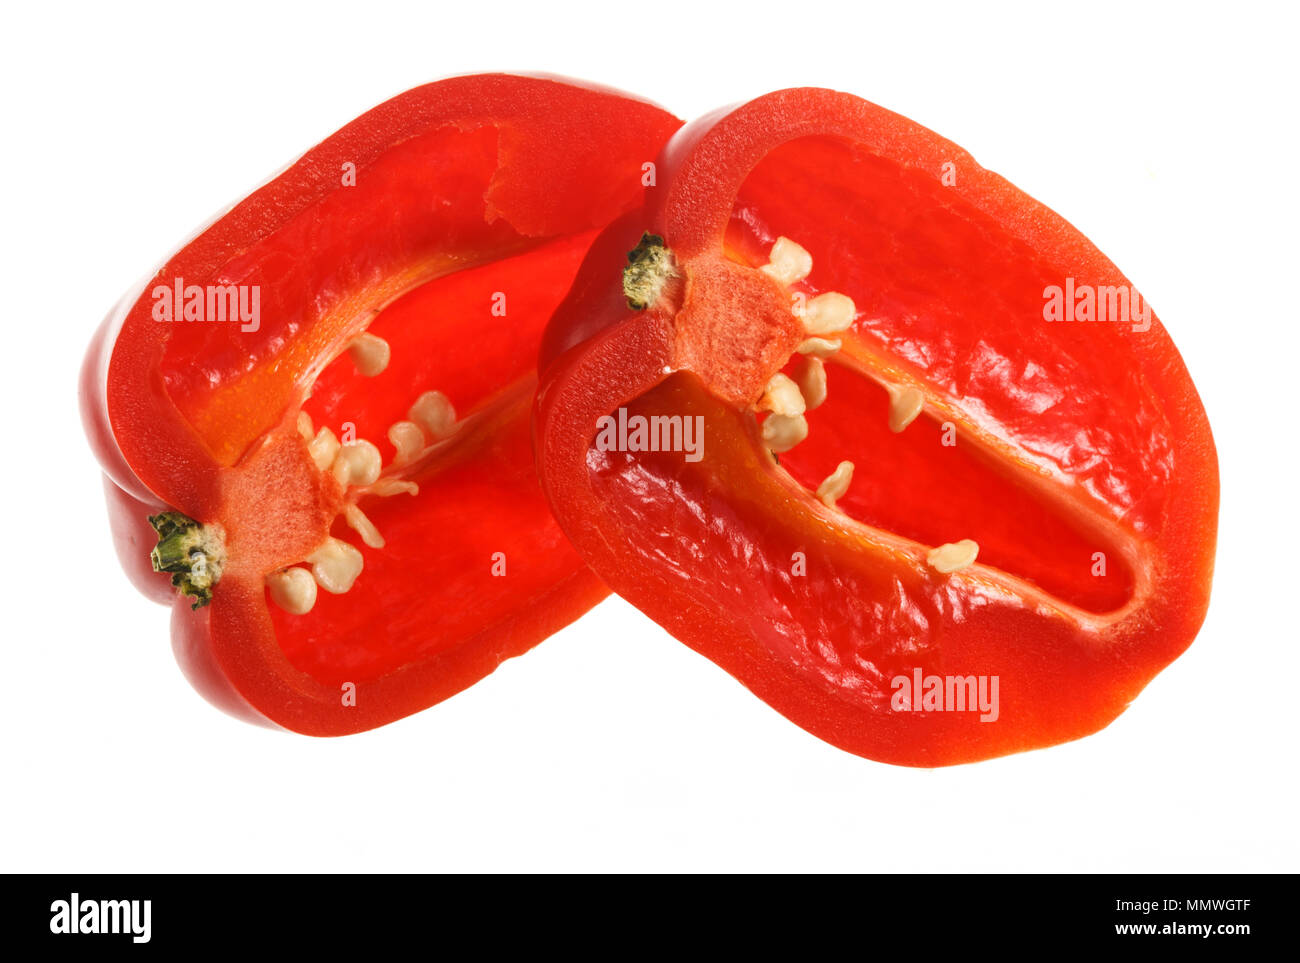 The Habanero is a medium sized chili pepper pod type cultivar of the species Capsicum annuum. It is a very hot chili, with a floral aroma, originated  - Stock Image